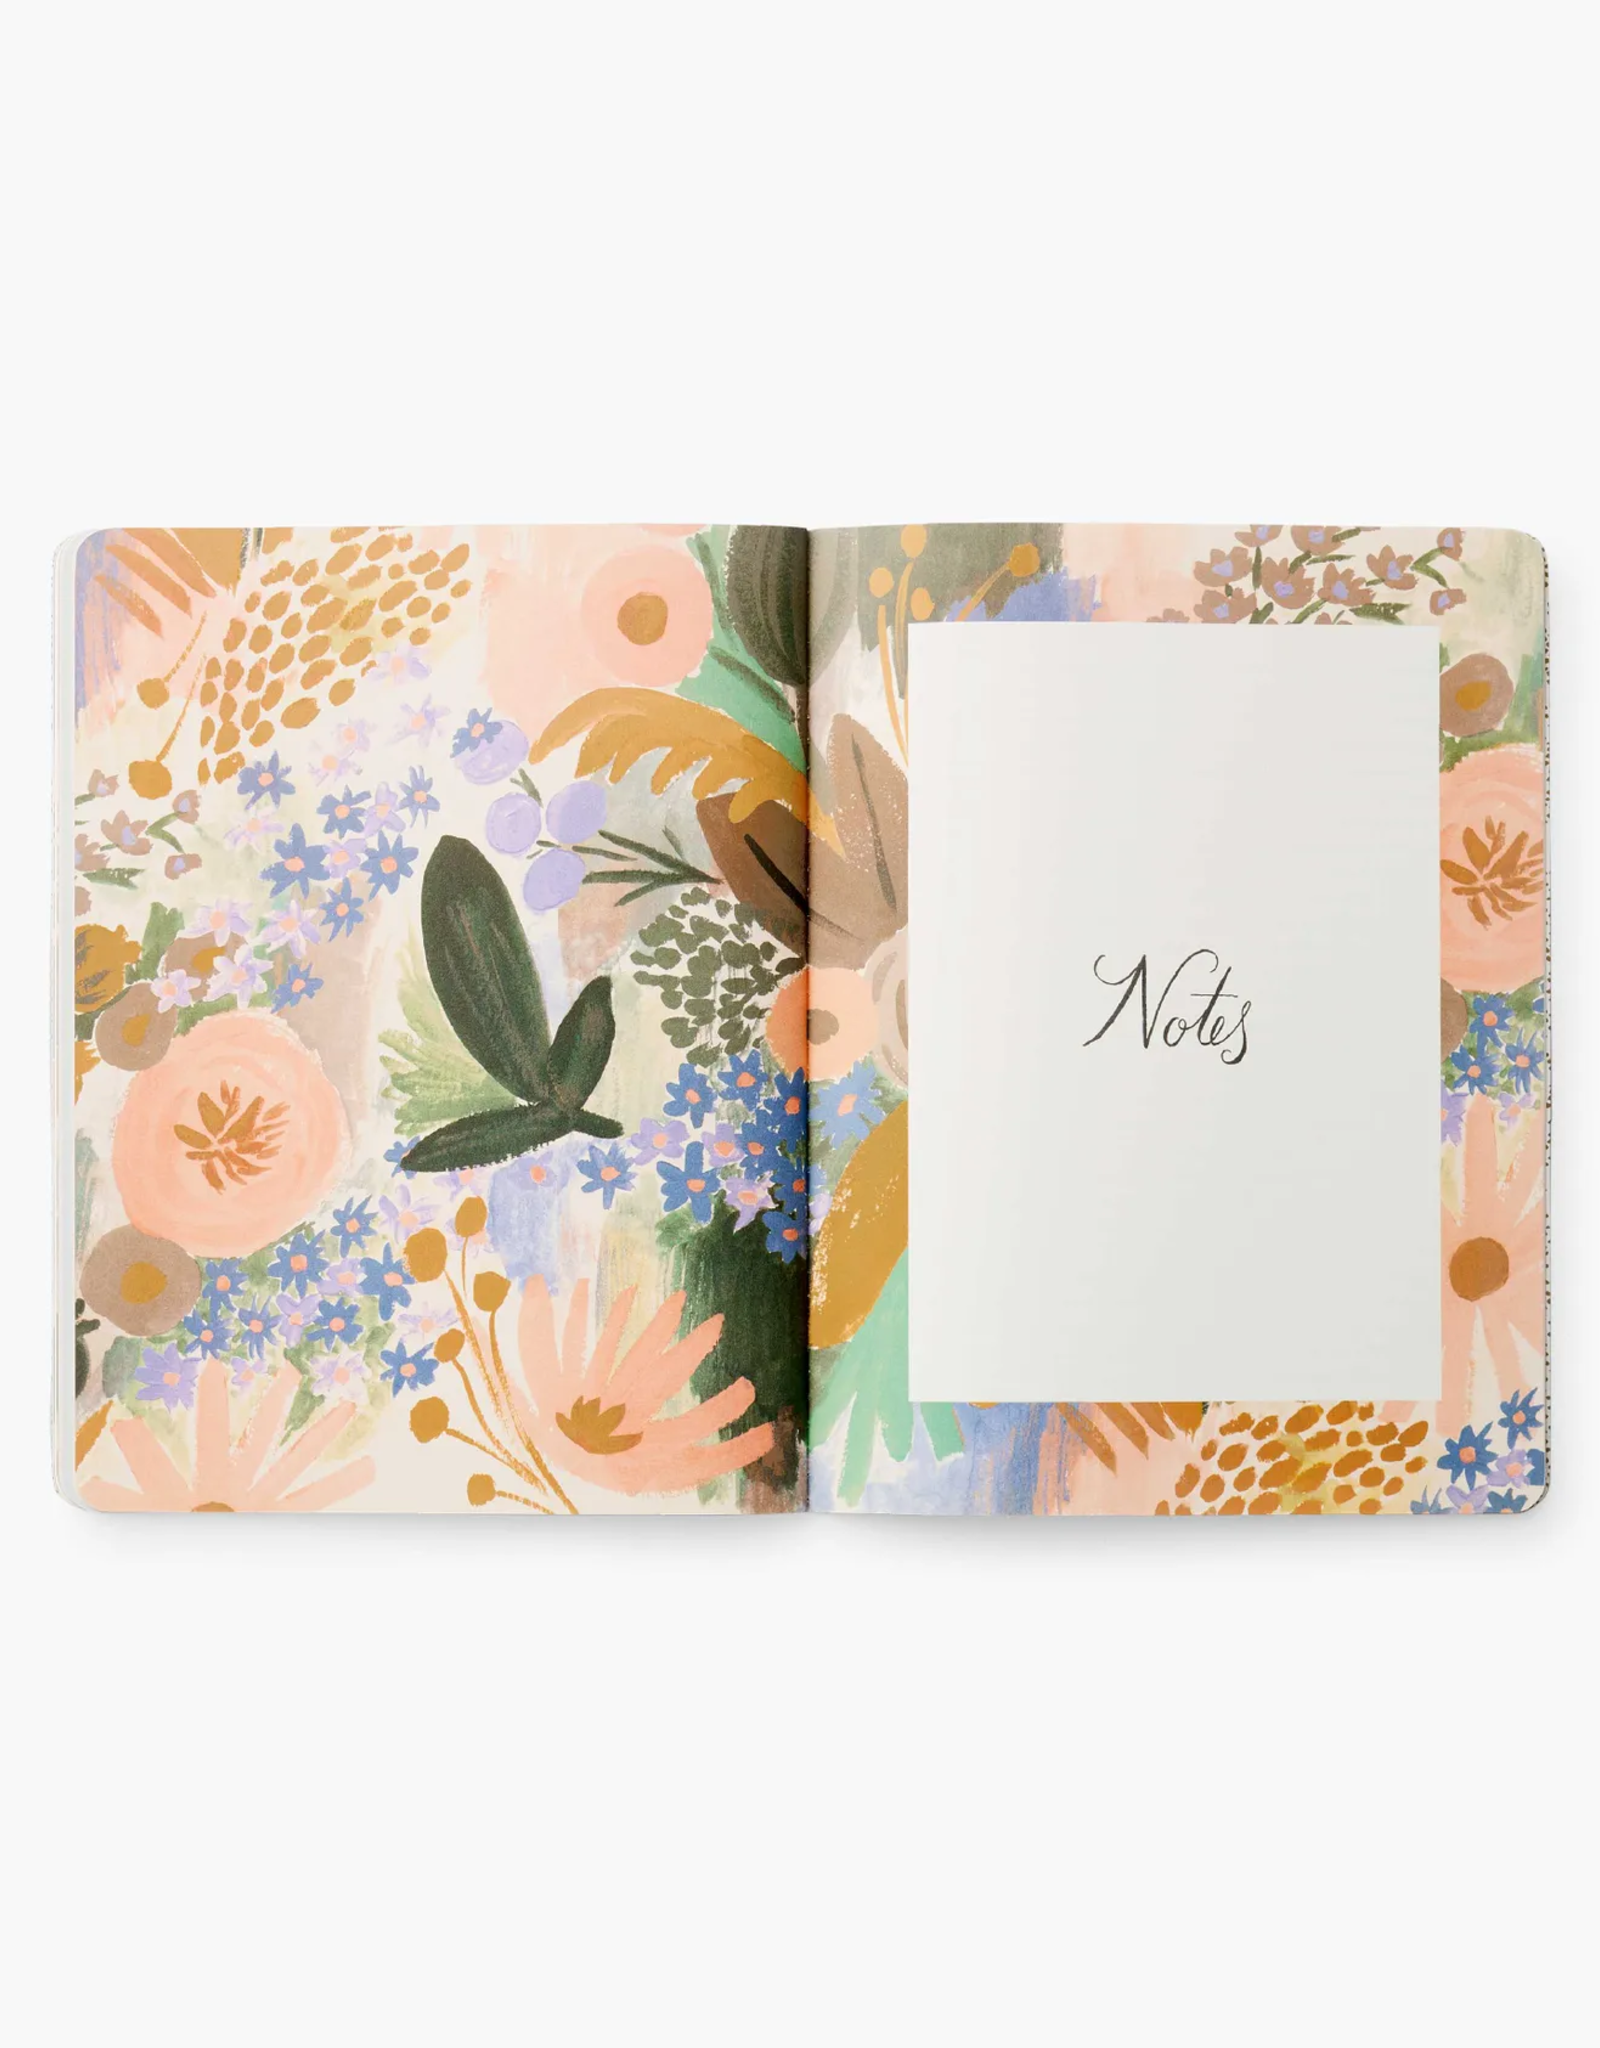 2021 Luisa Appointment Book